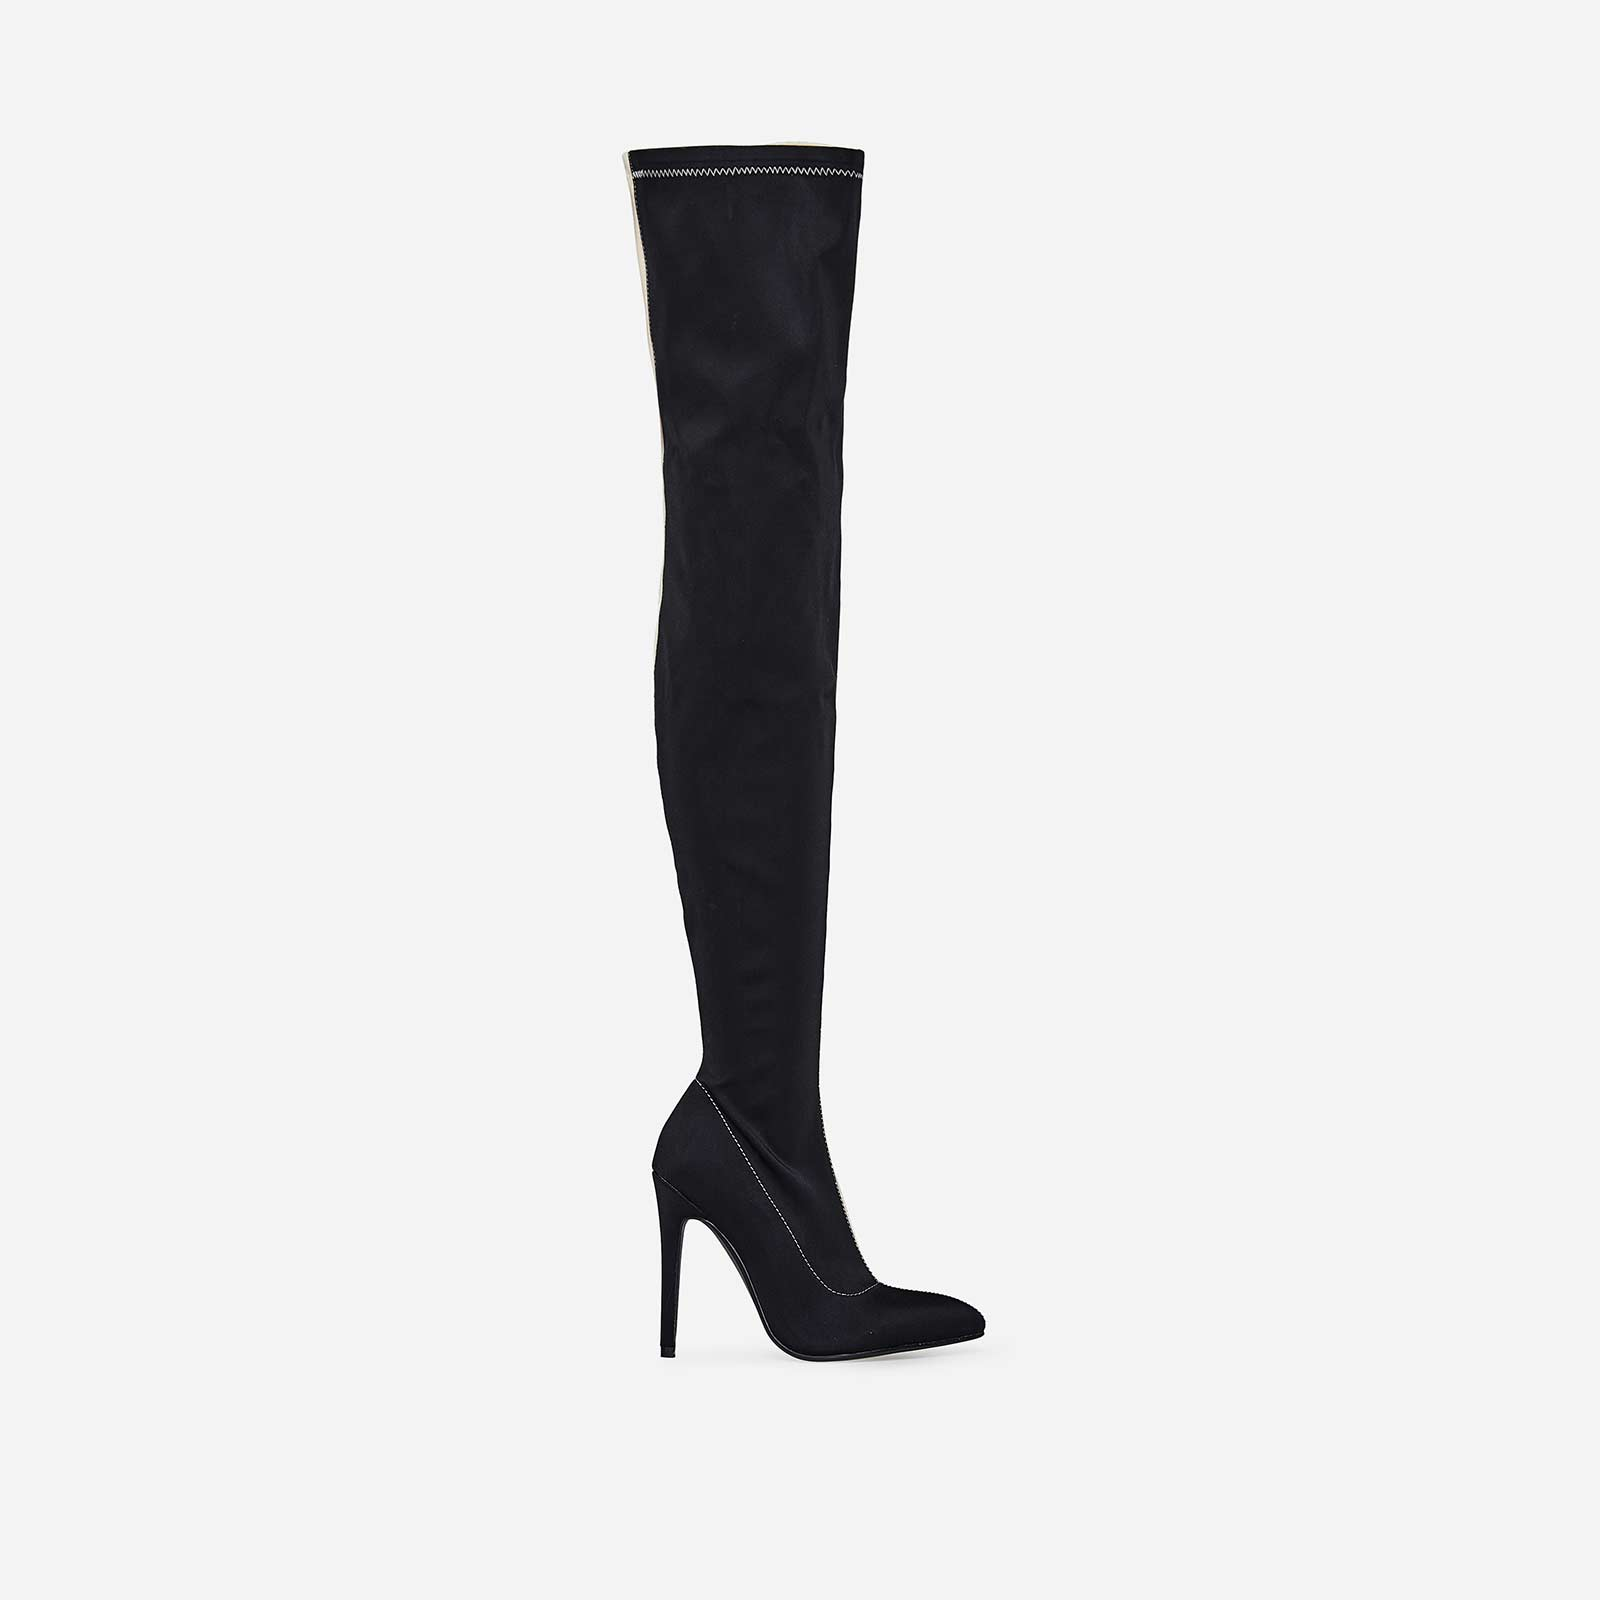 Hustler Two Tone Thigh High Long Boot In Black And Nude Lycra